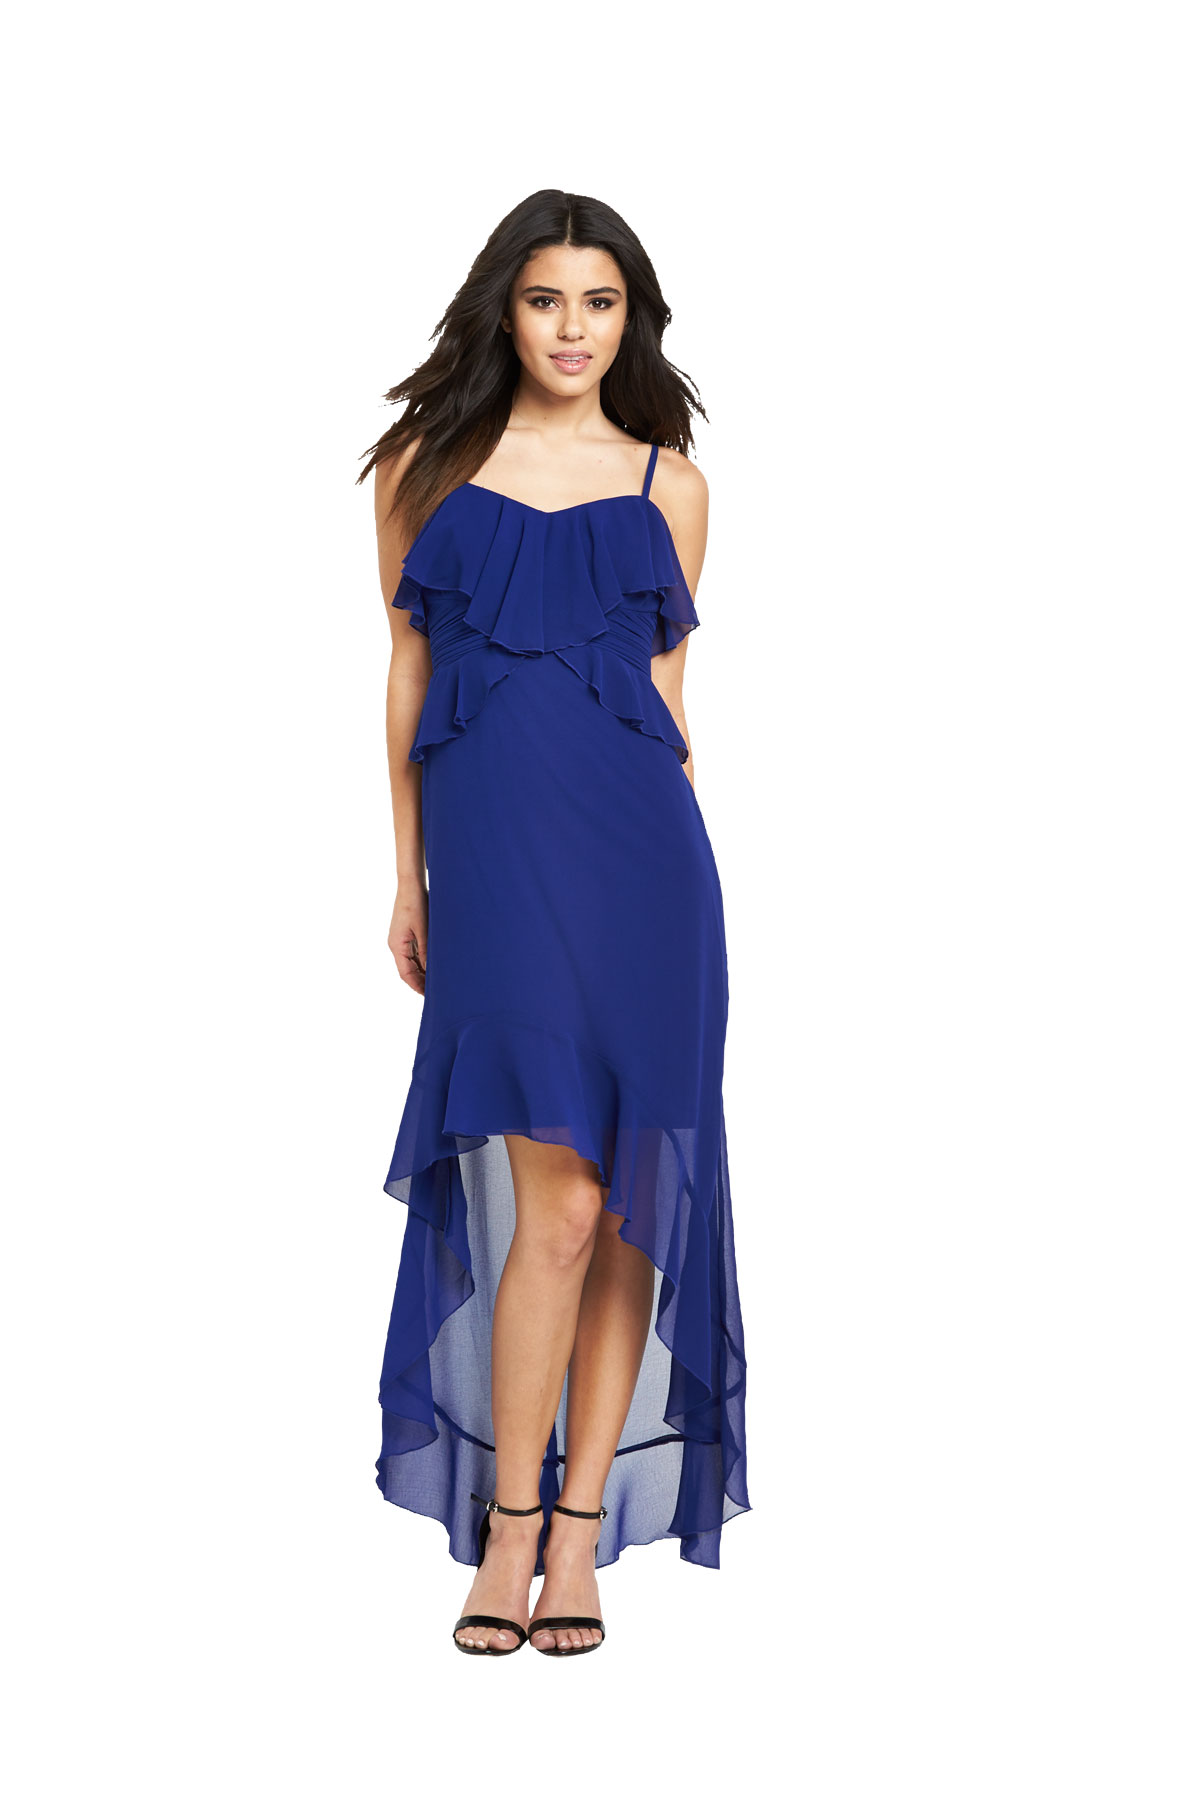 Lipsy Blue Ruffle Cami Hi Low Maxi Dress